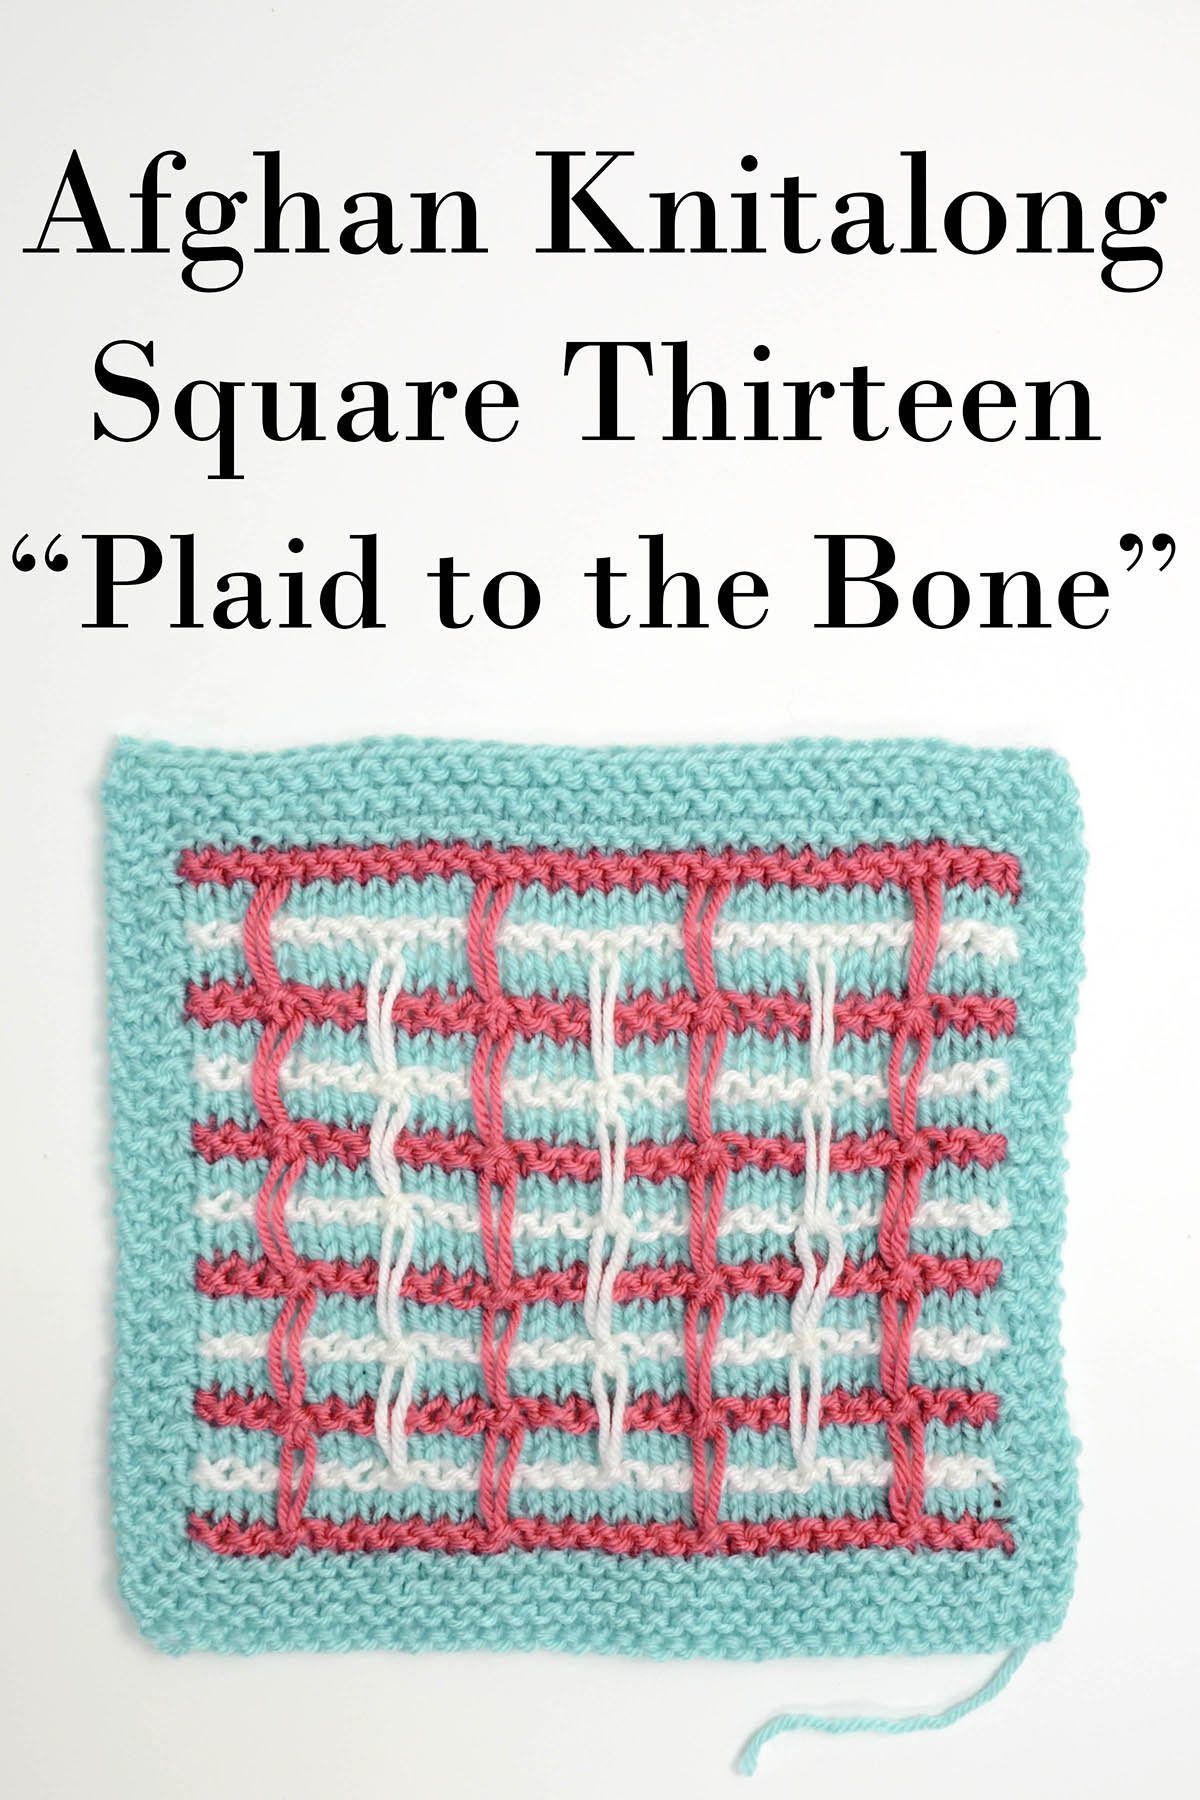 13 Afghan Knitalong Plaid to the Bone